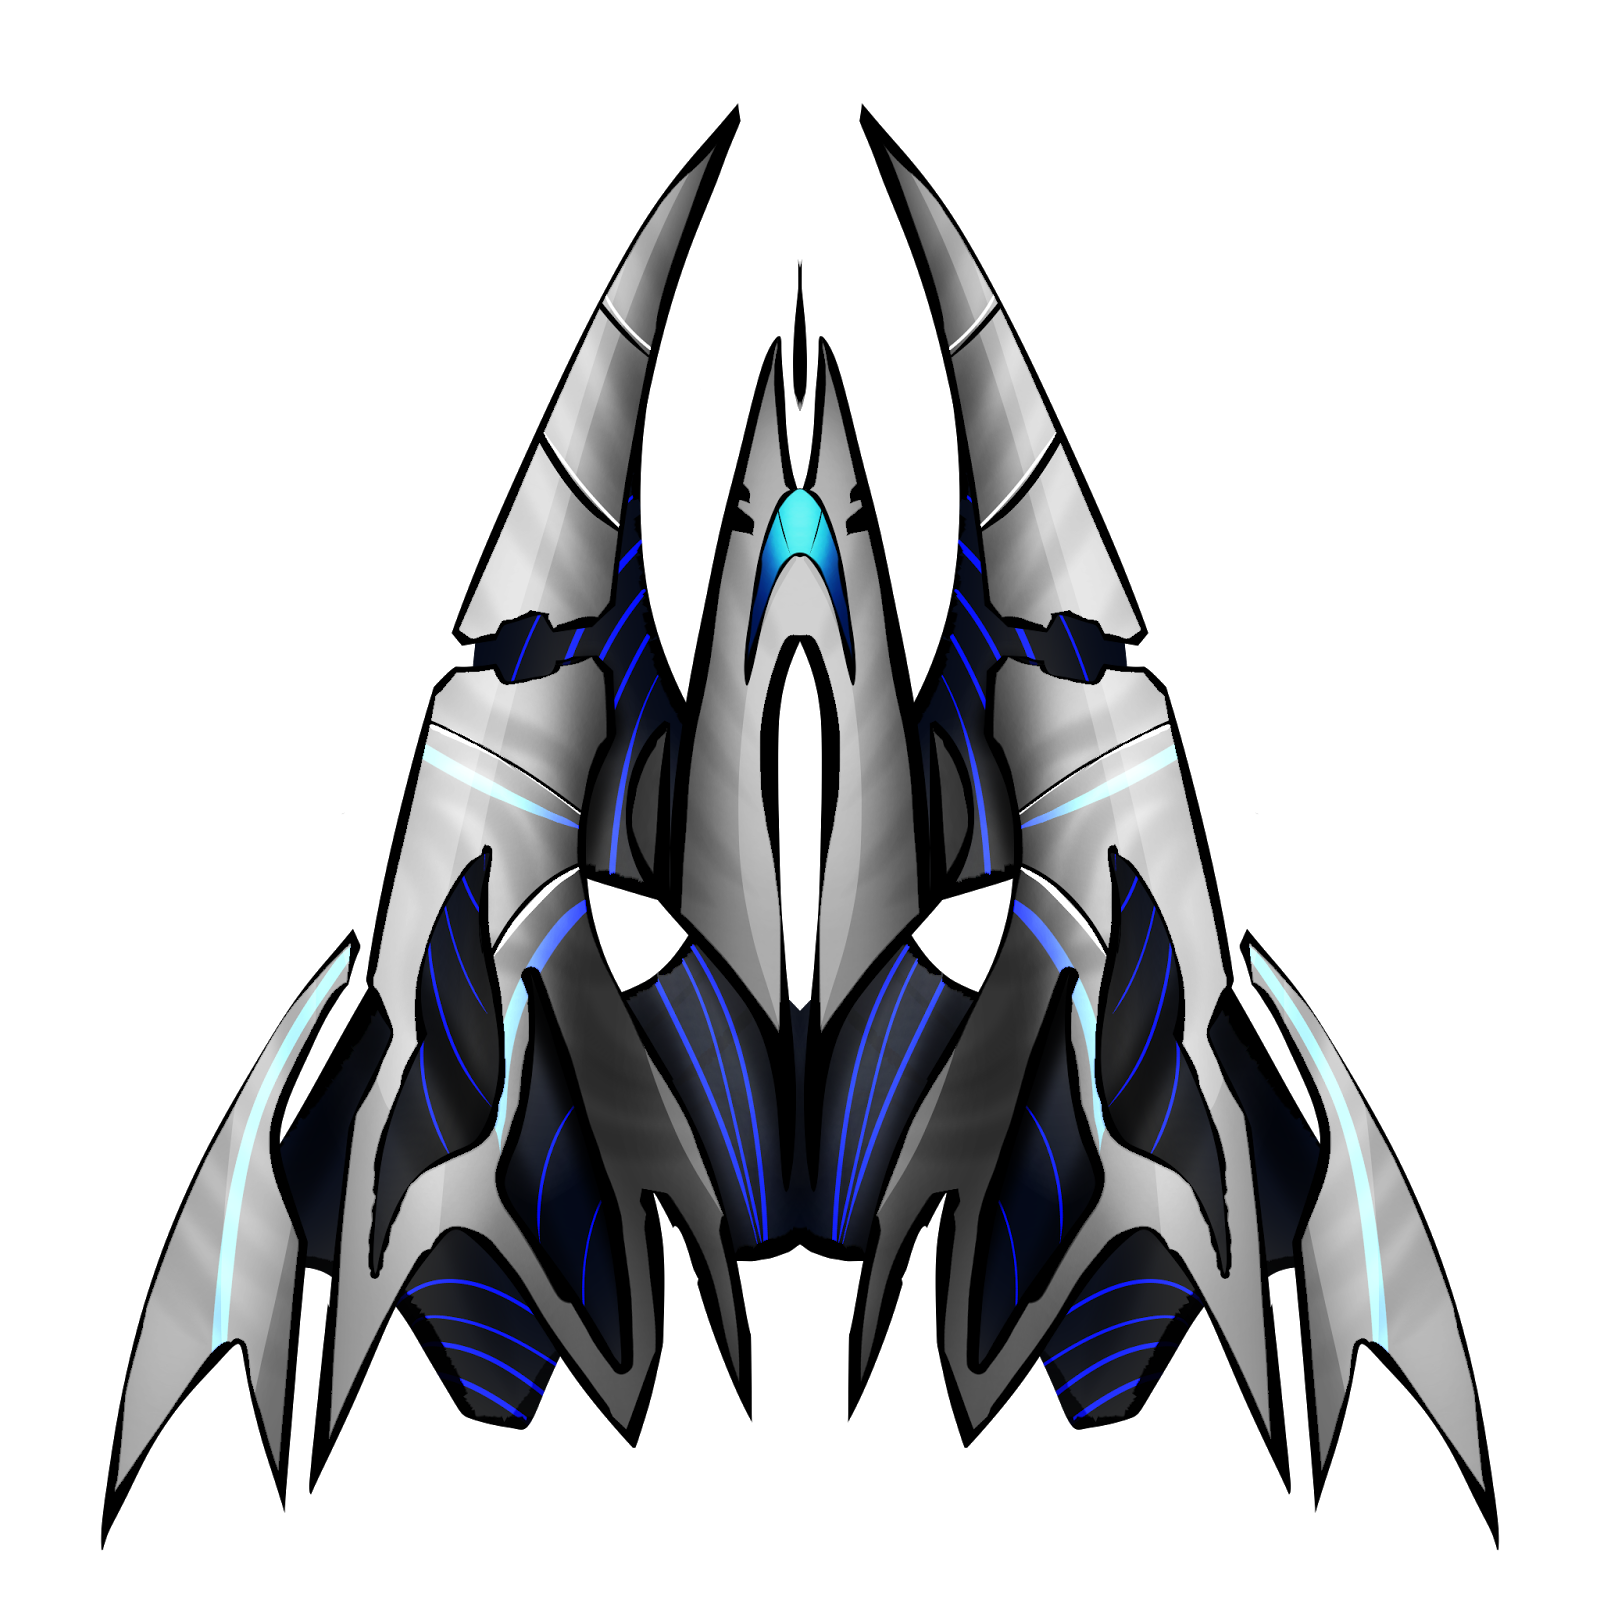 Top down spaceship png. Millionthvector new free sprites